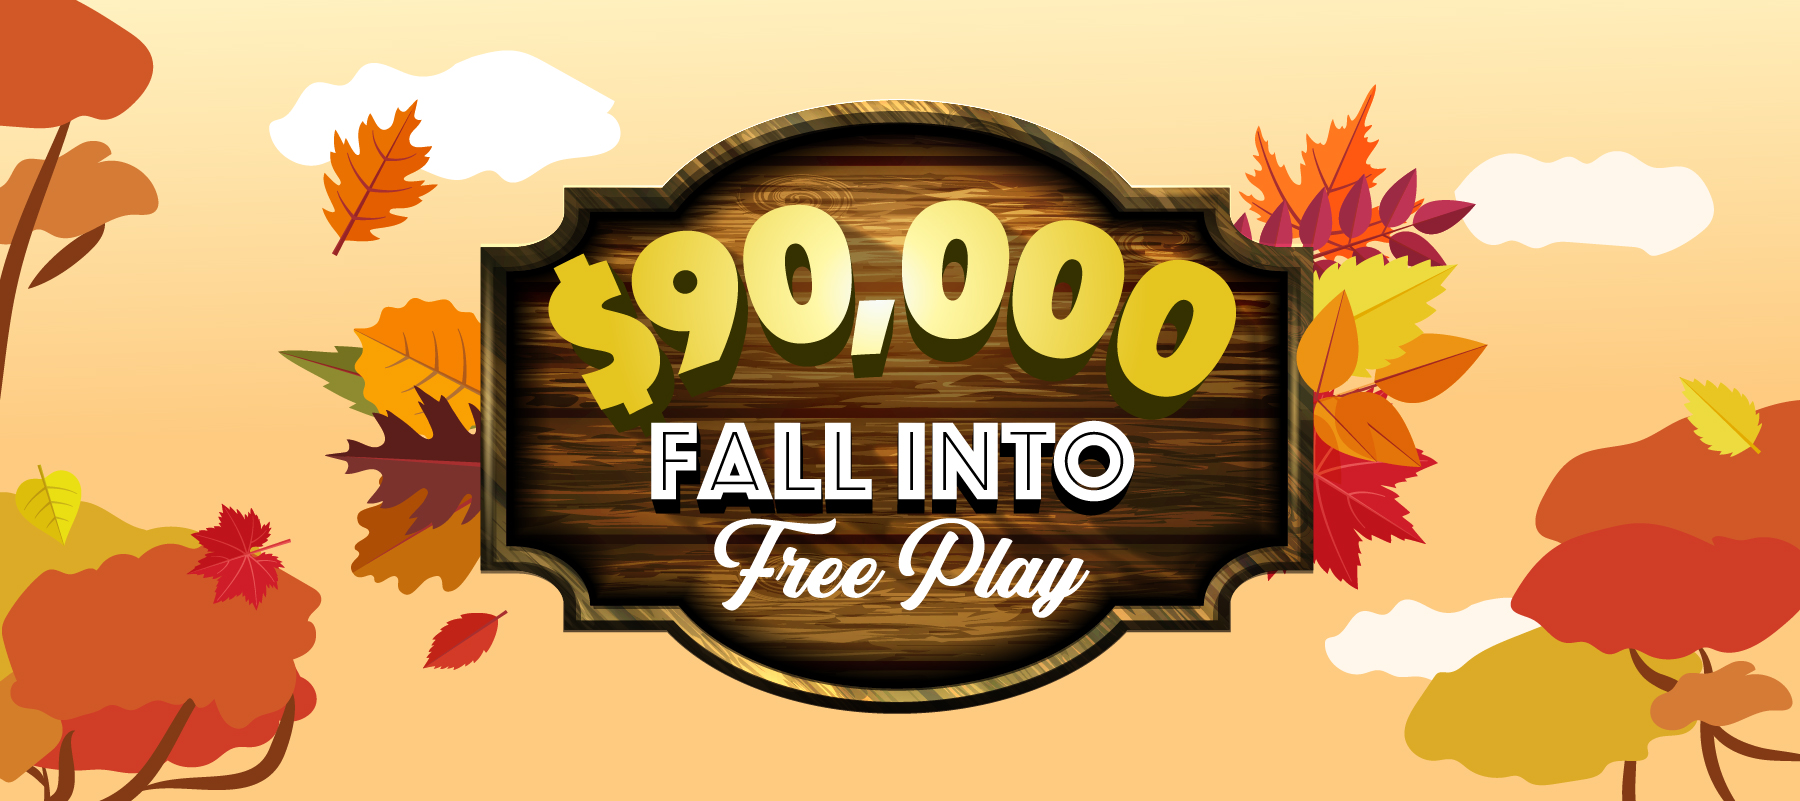 $90,000 Fall Into Free Play